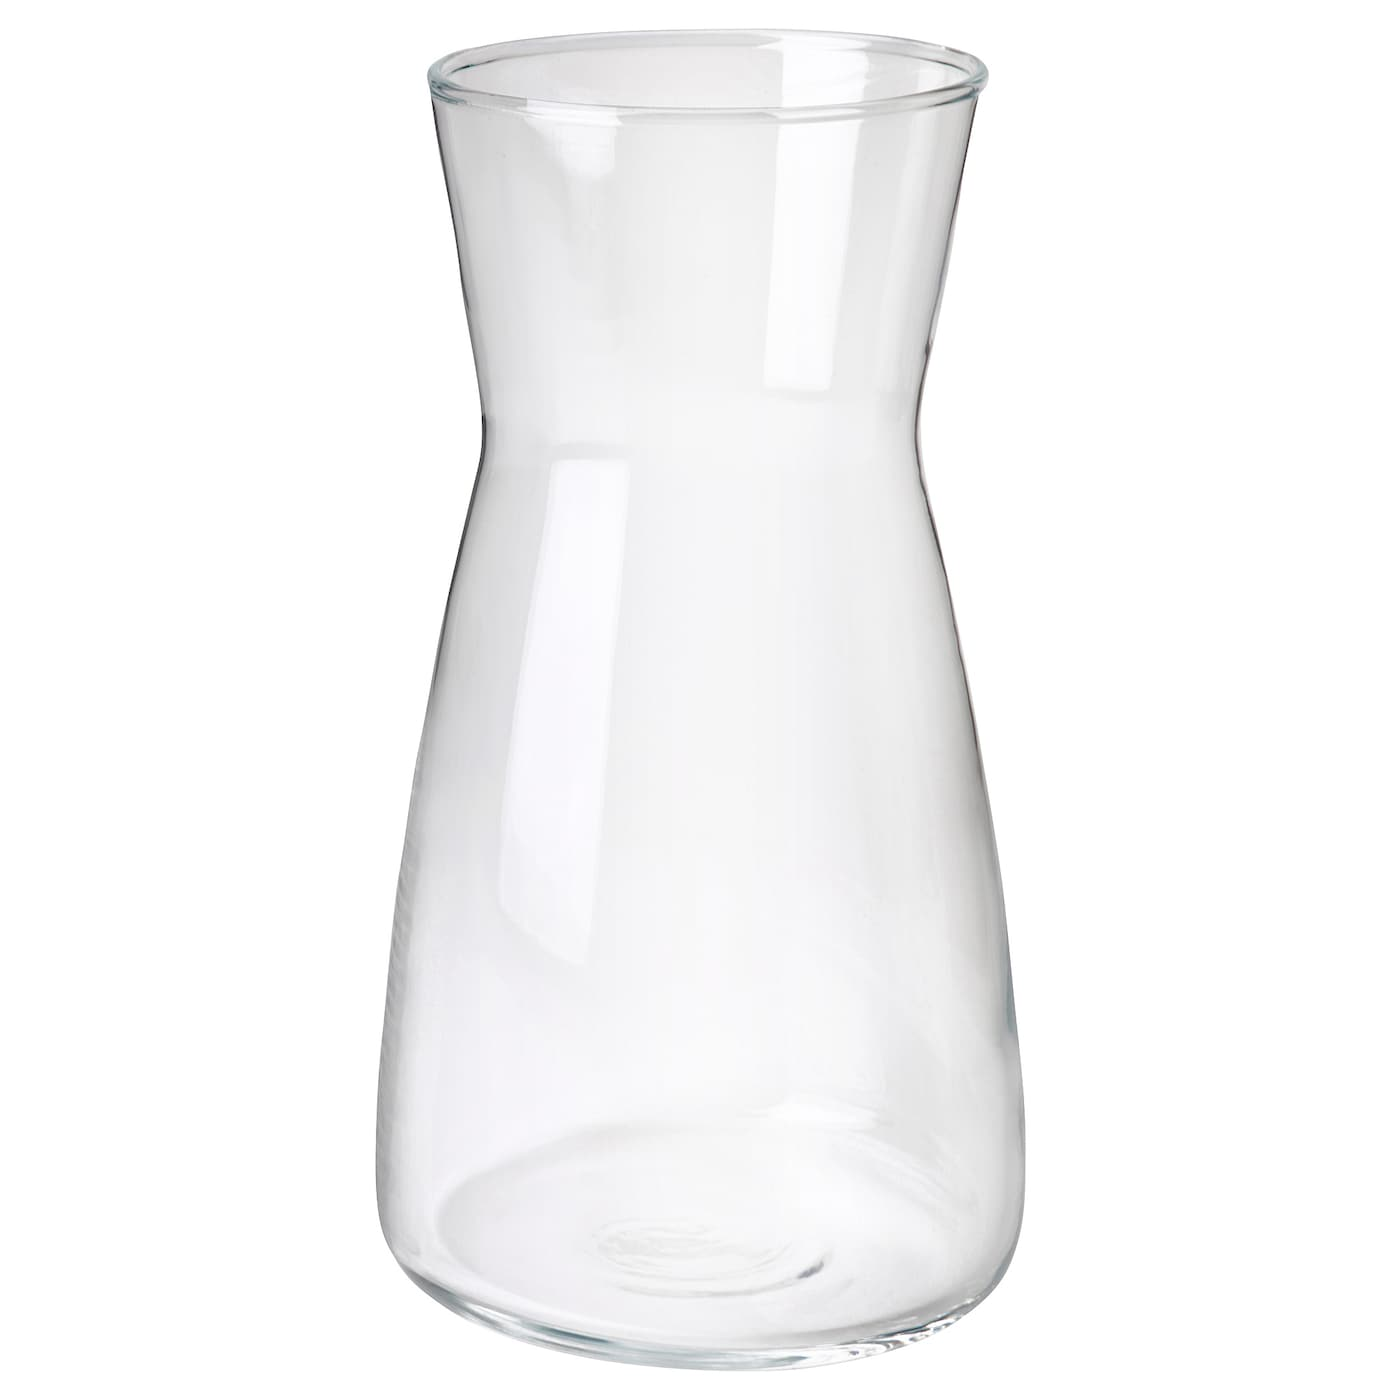 karaff carafe clear glass 1 0 l ikea. Black Bedroom Furniture Sets. Home Design Ideas